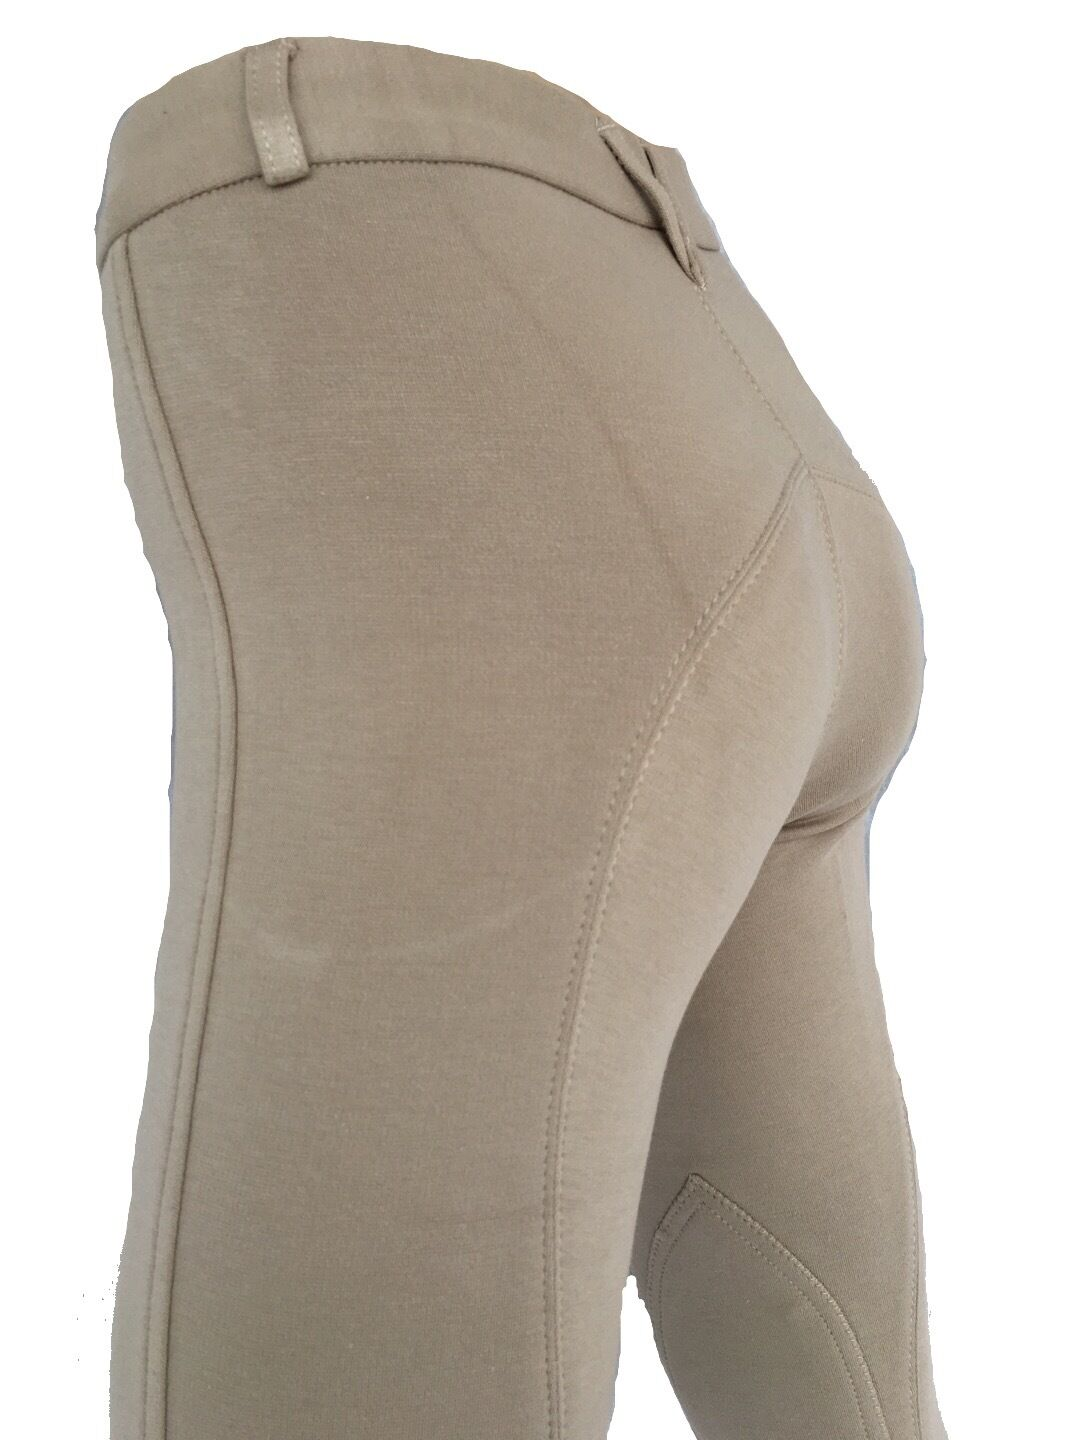 Ladies Beige Jodhpurs Women Beige Riding Pants Plus size Jodhpurs Sizes  8 to 24